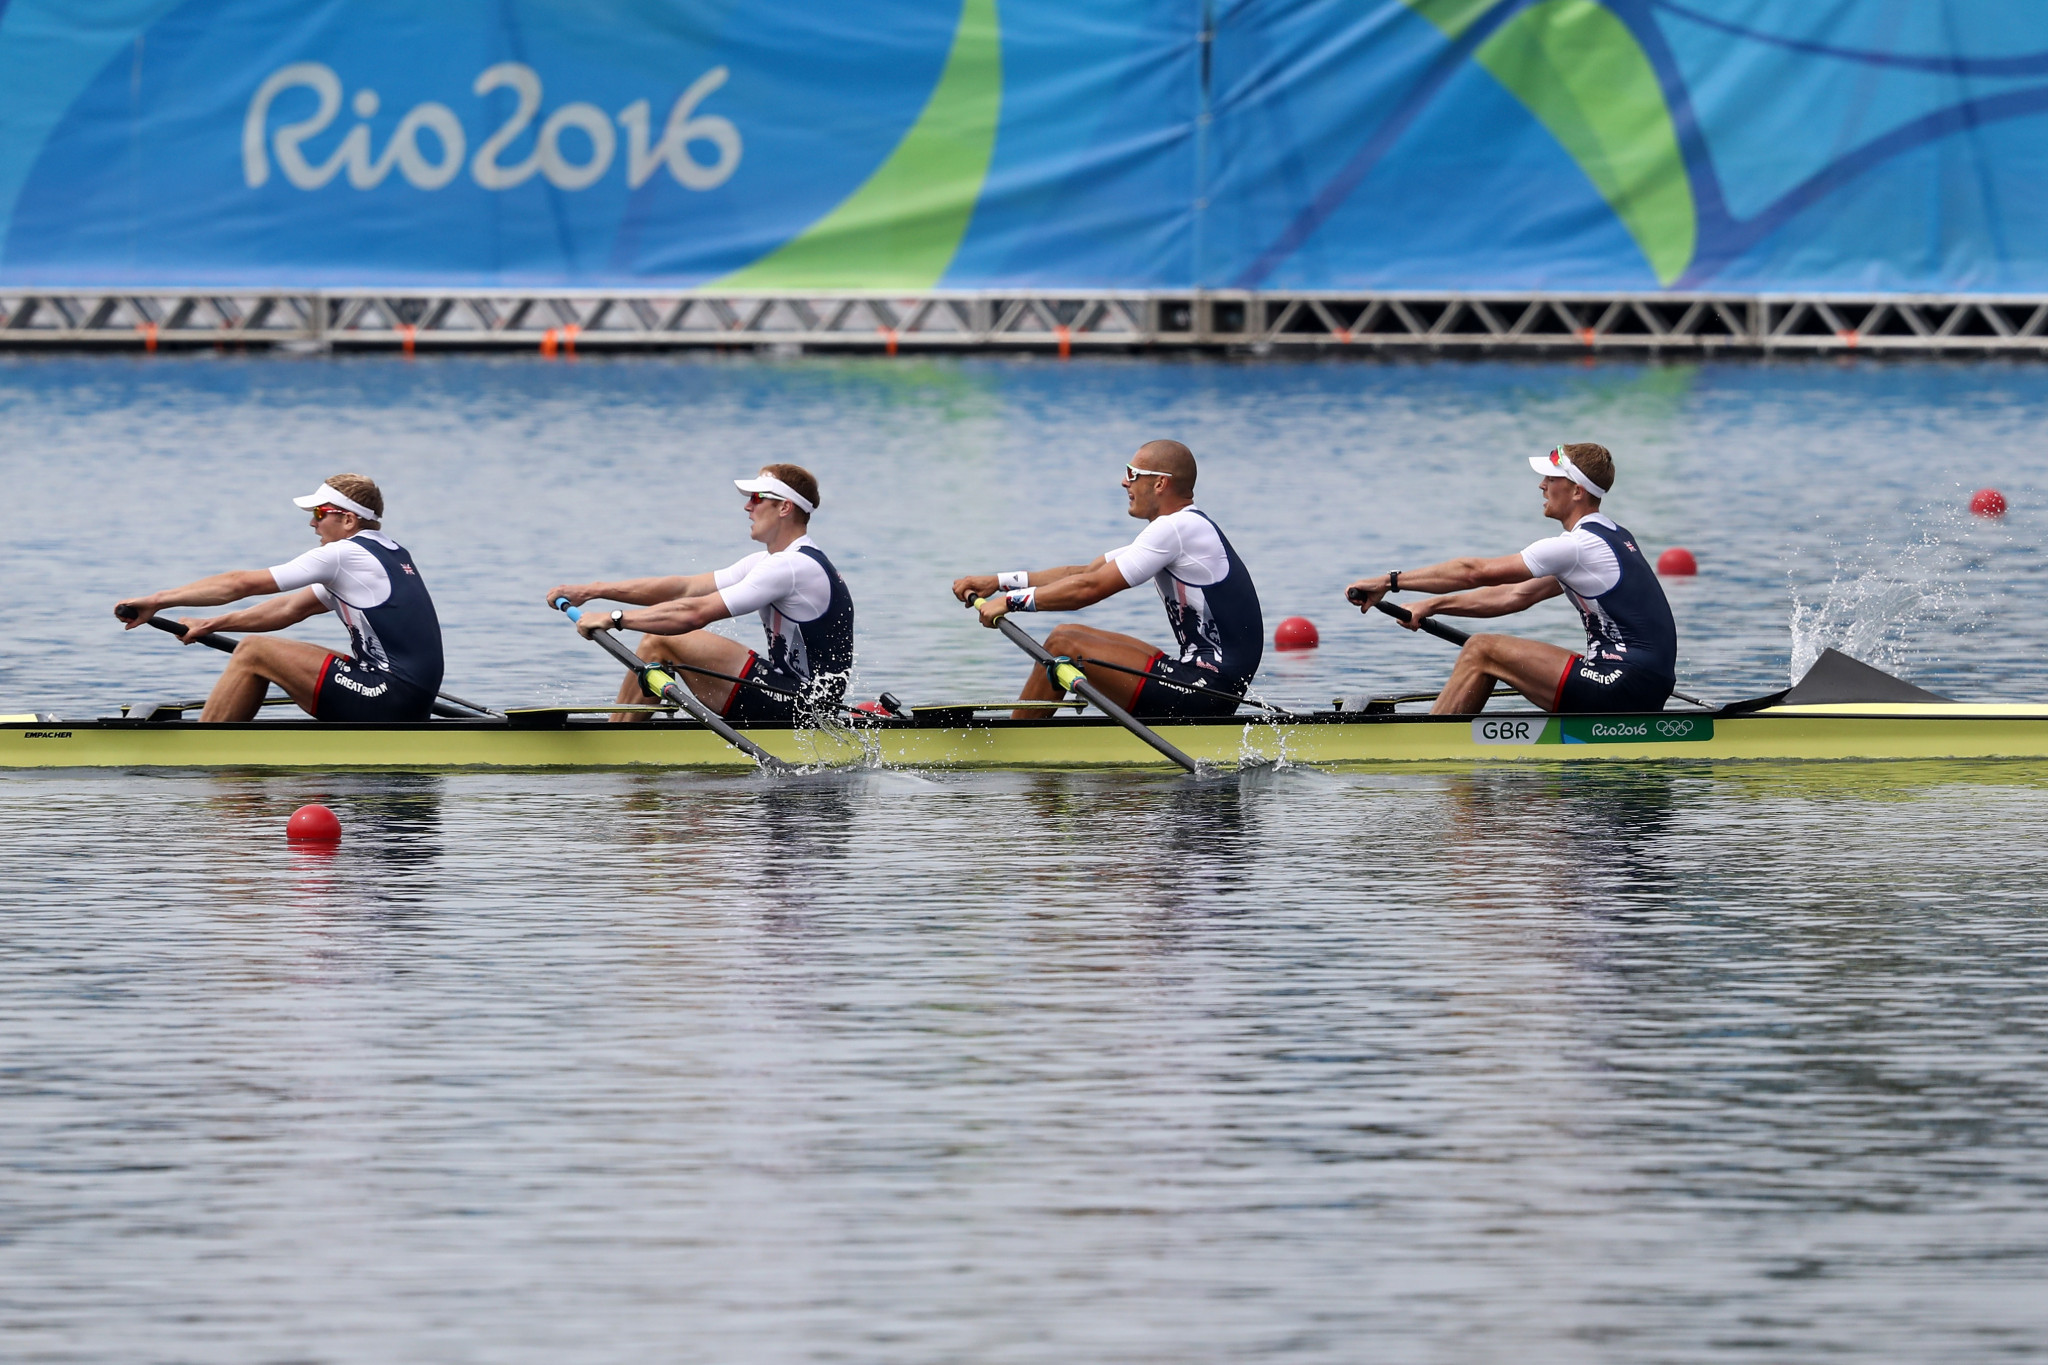 Motorboats set to be missing from Tokyo 2020 rowing regatta